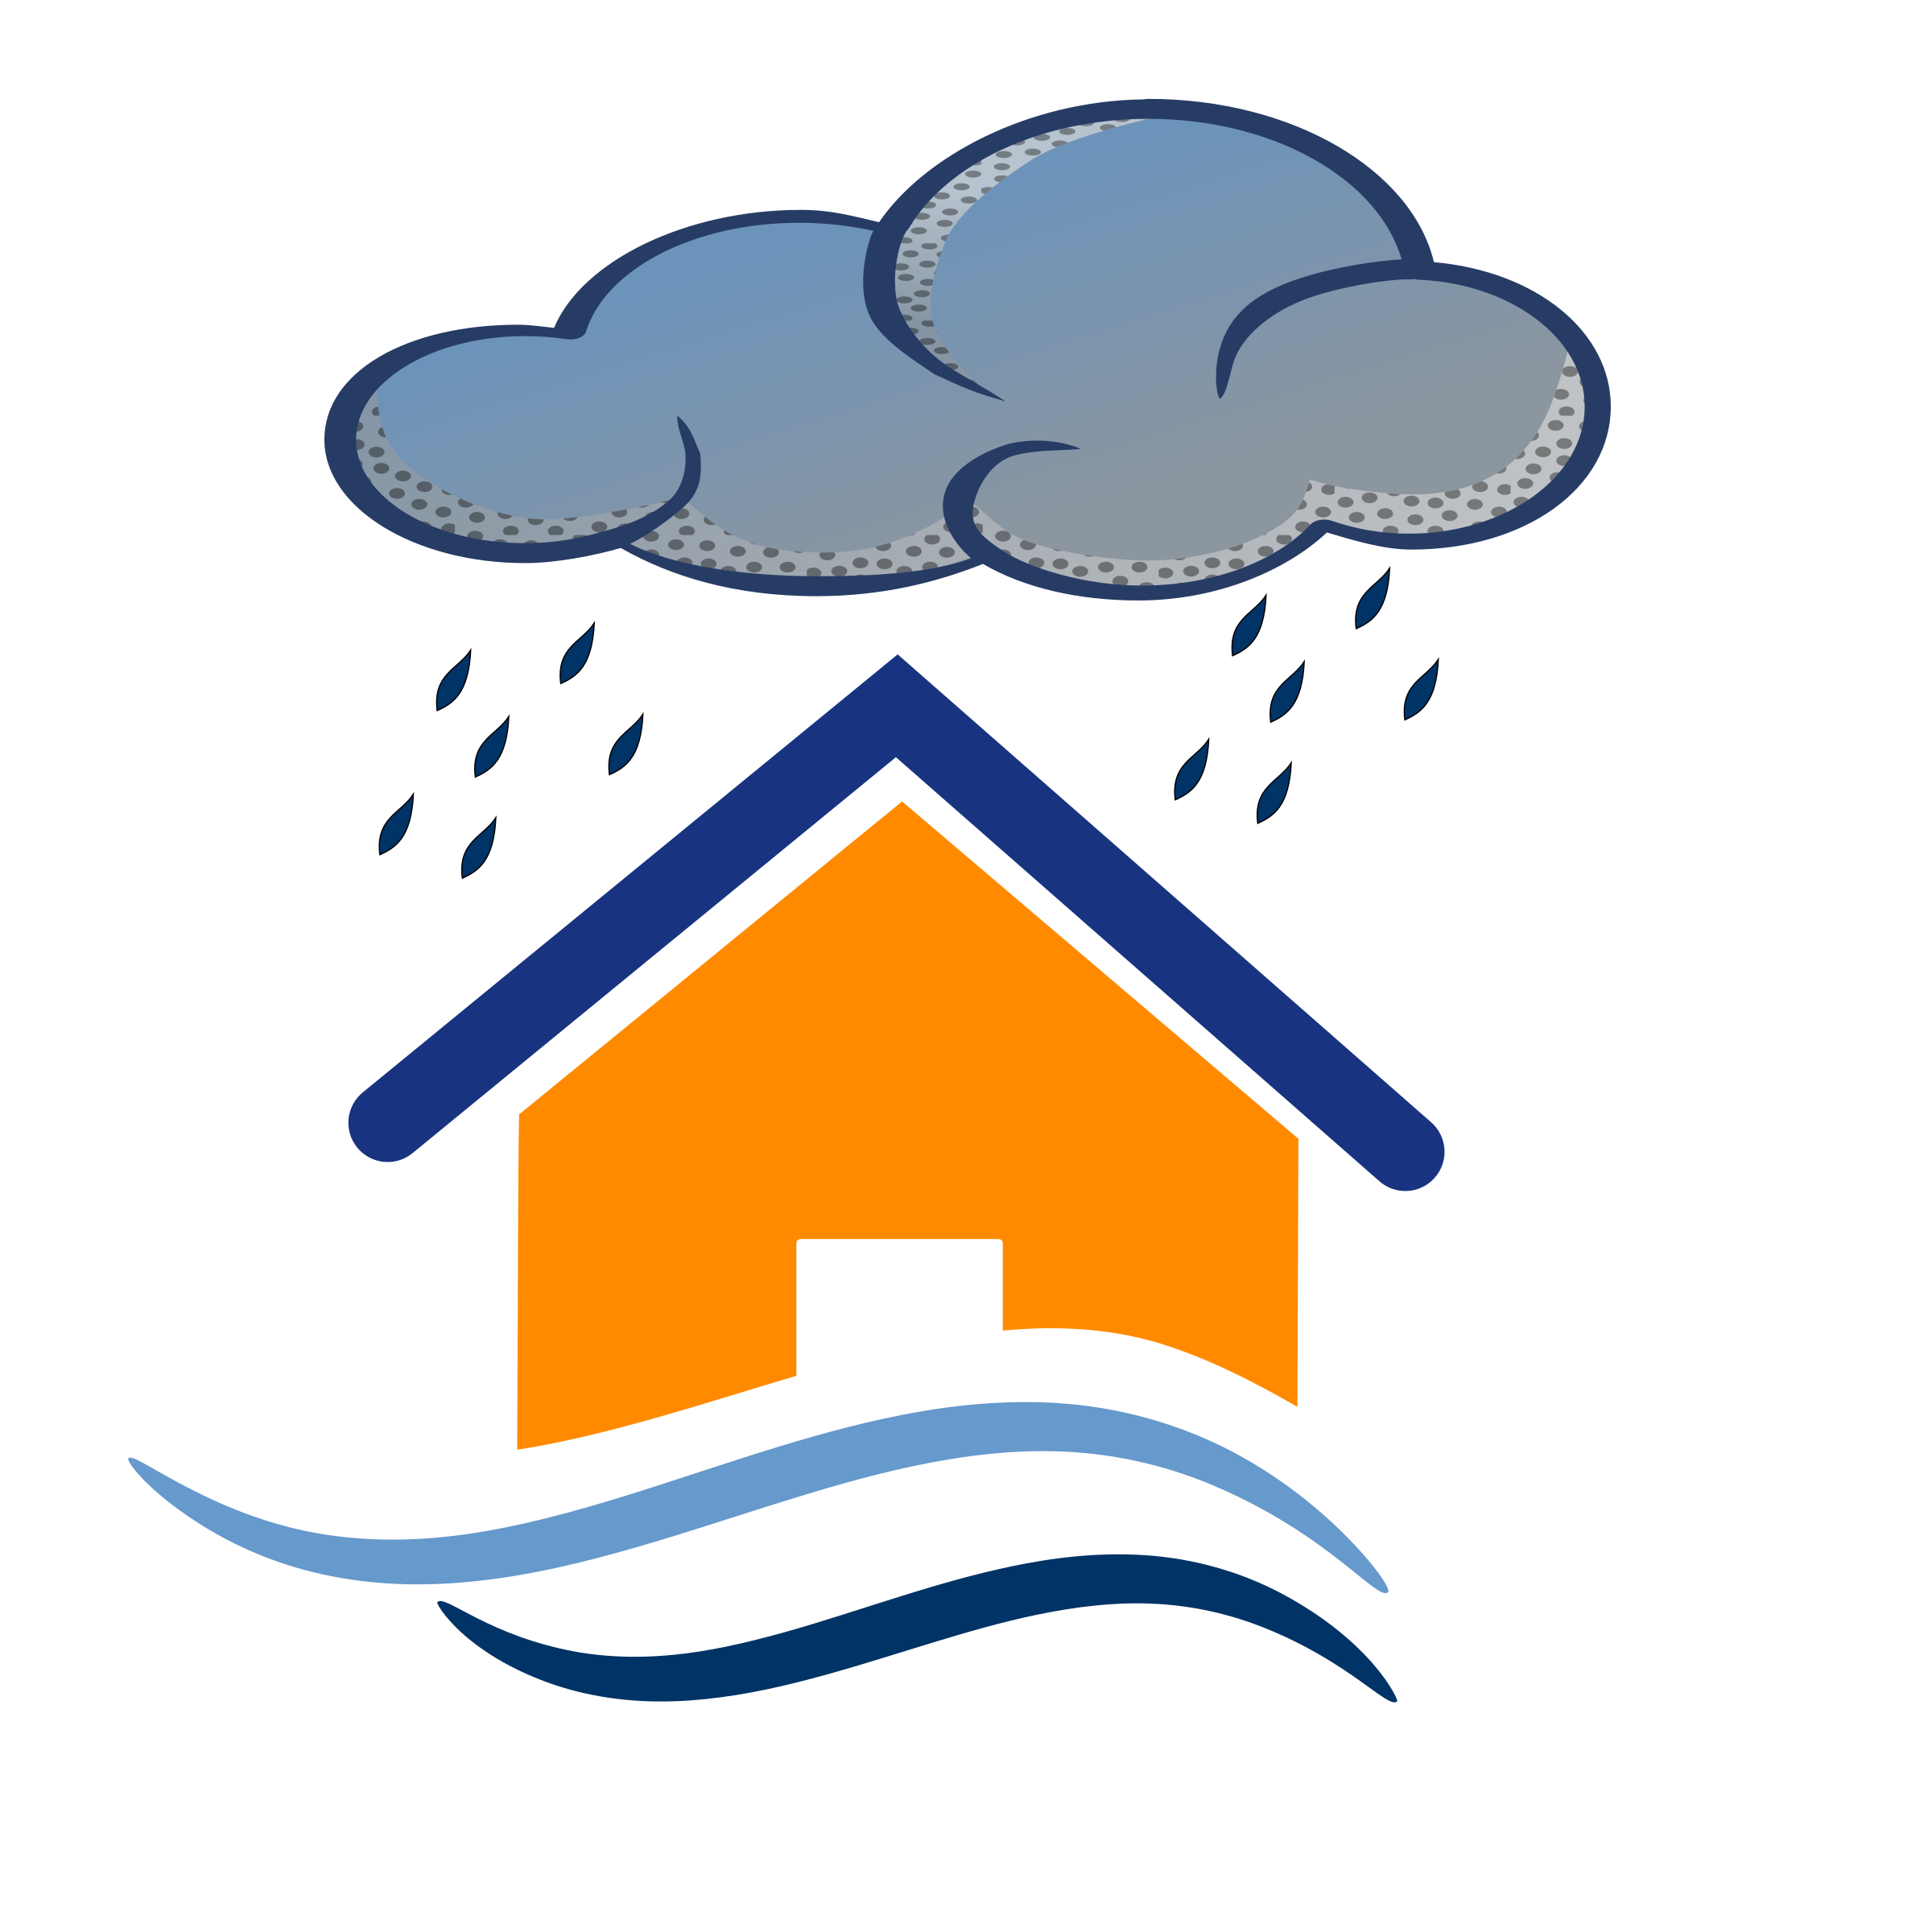 Places clipart flooded #10